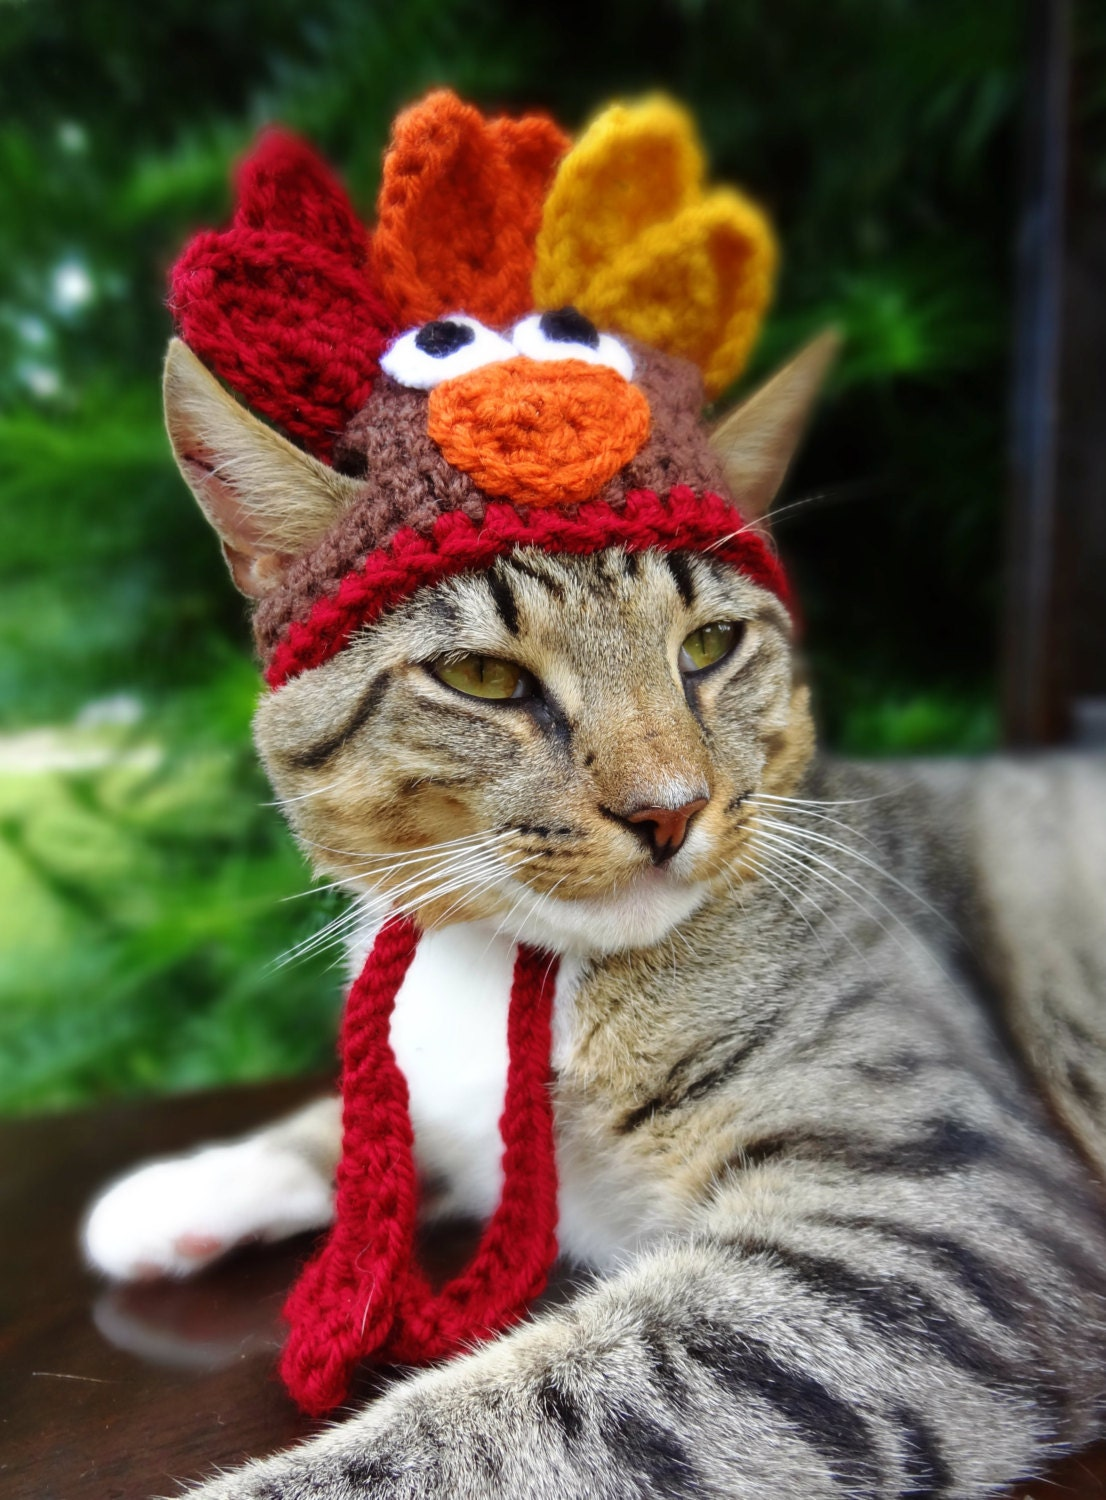 Turkey Cat Hat, Turkey Cat Costume - The Thanksgiving Turkey Hat for Cats and Small Dogs - Turkey Costume for Cat, Turkey Hat for Cat